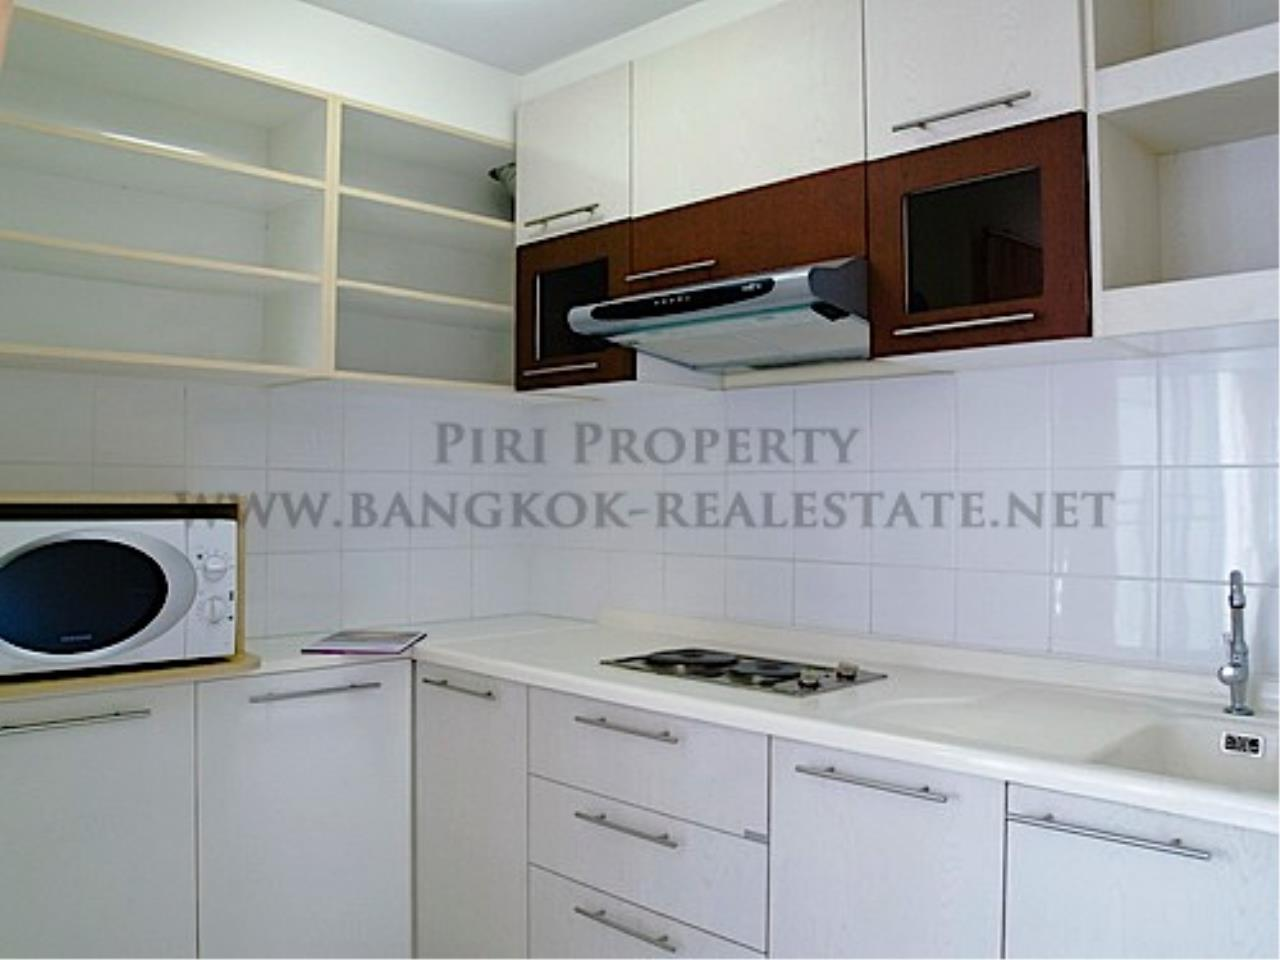 Piri Property Agency's Nicely Decorated Unit in Prime Area 5